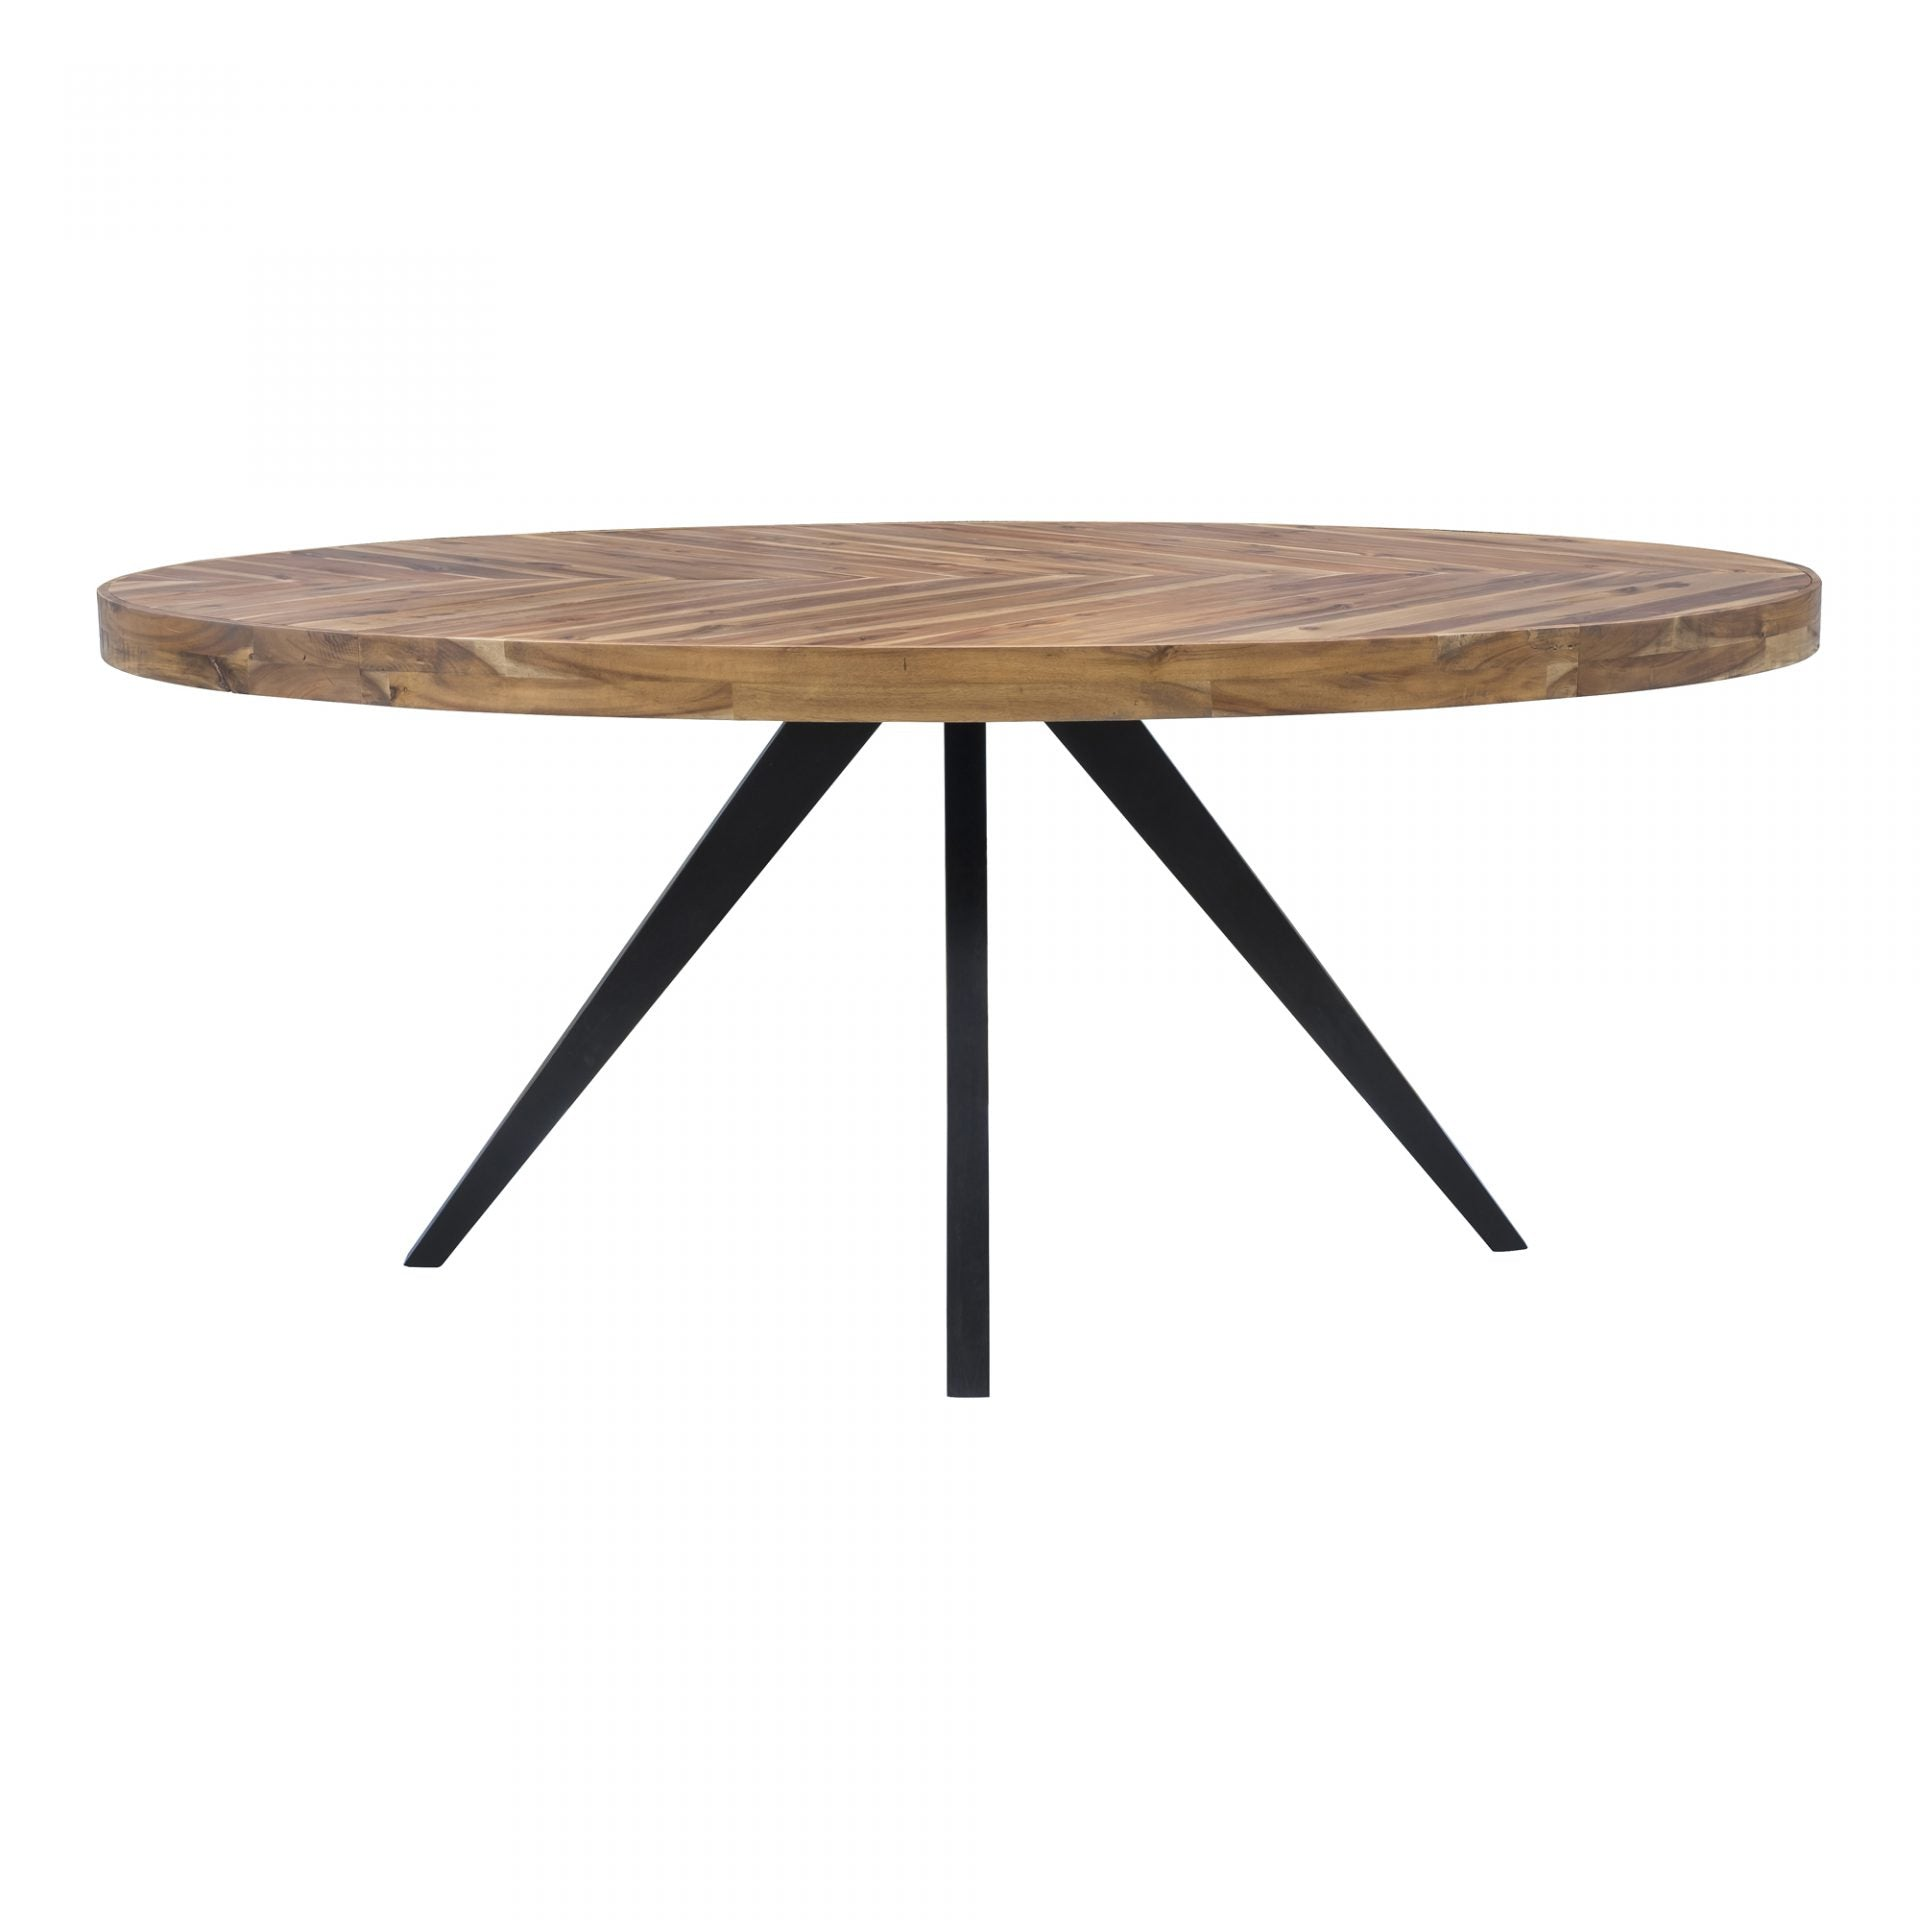 PARQ DINING TABLE - OVAL